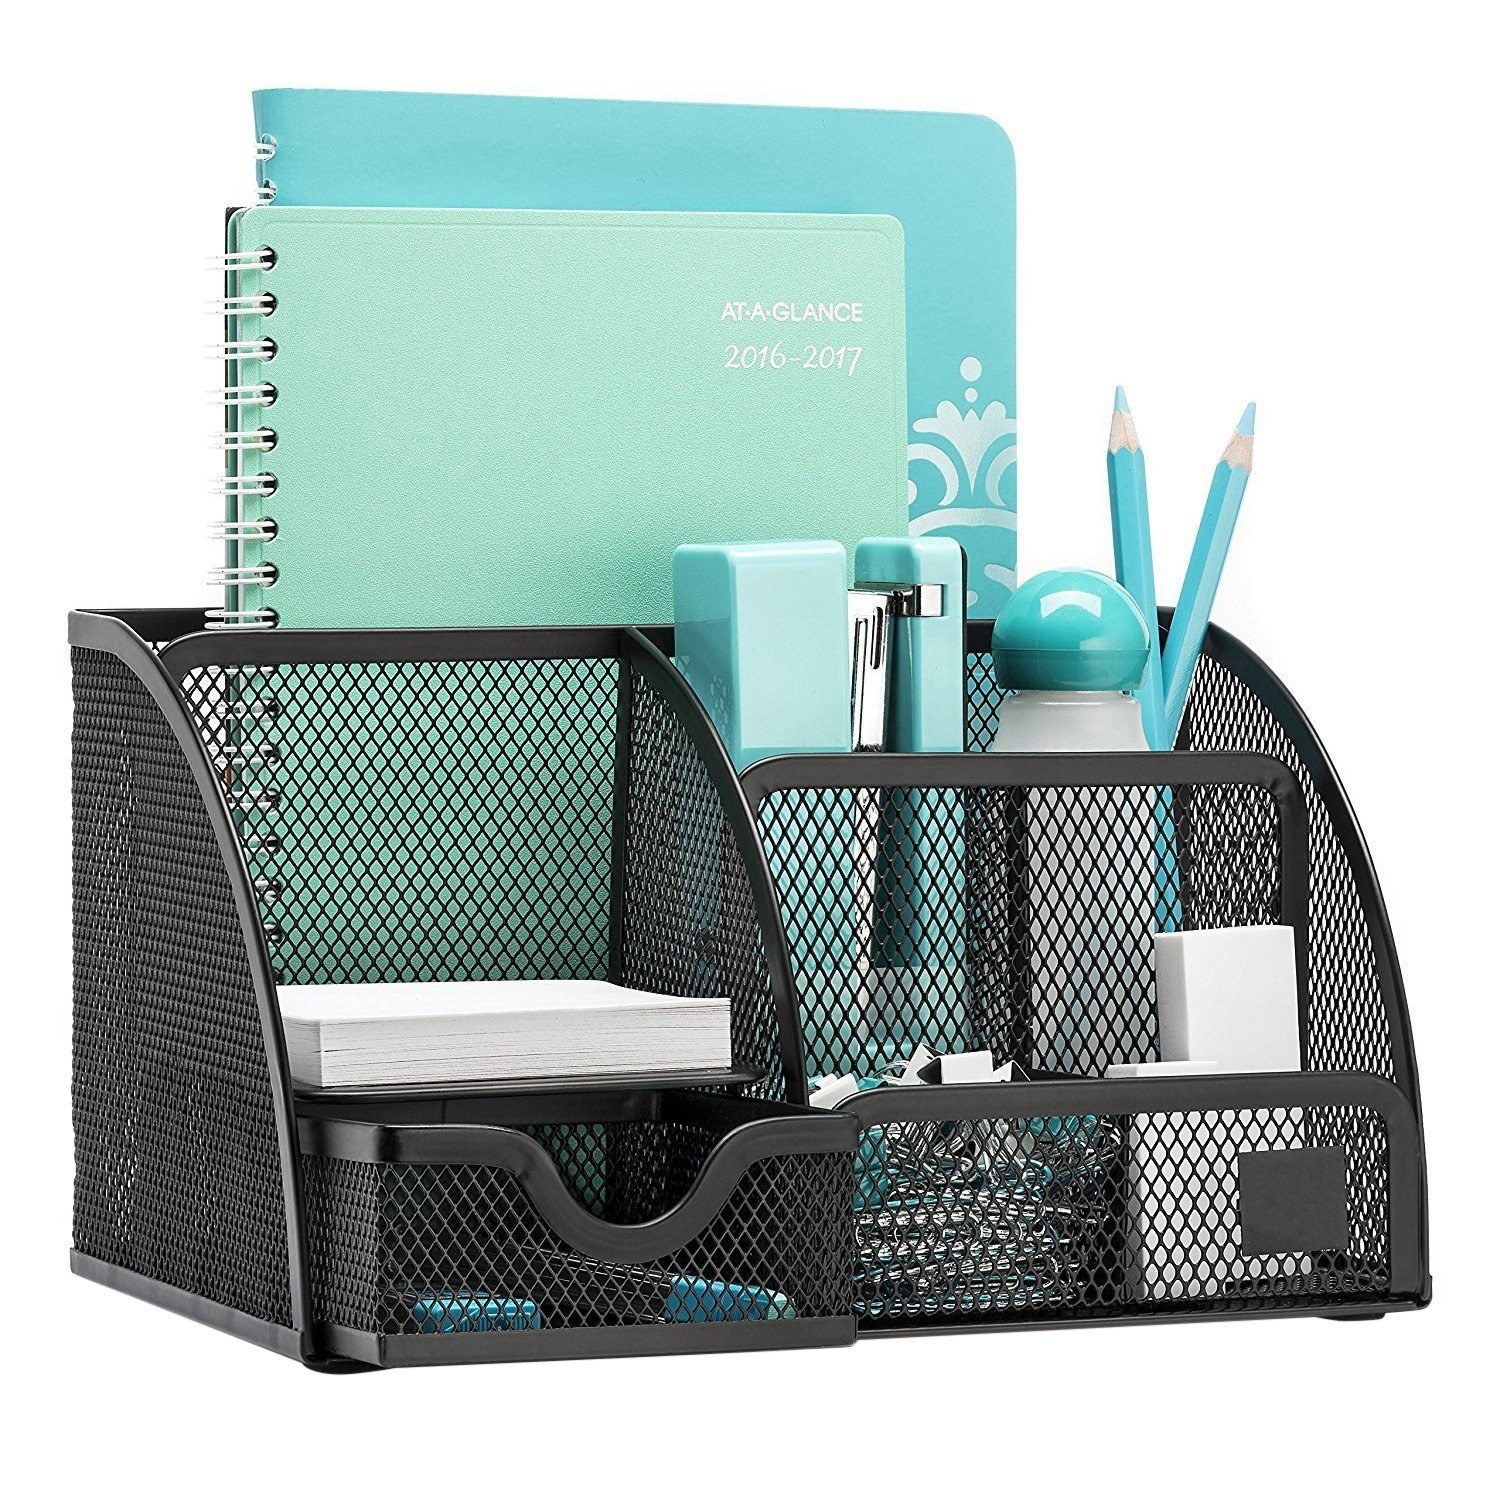 A black desk organiser with stationery and notebooks kept in it